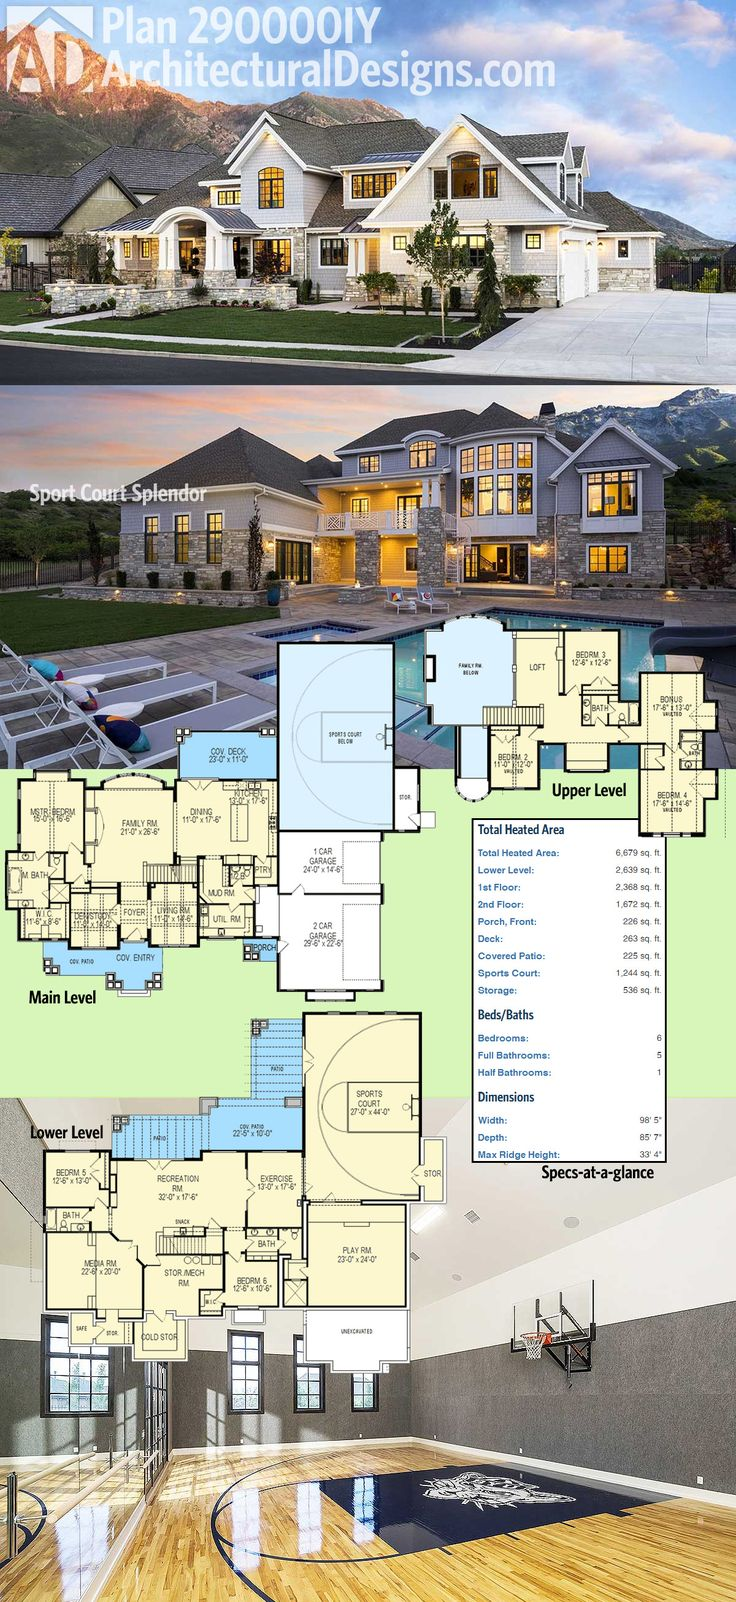 Best 25 luxury houses ideas on pinterest for House plans with indoor sport court